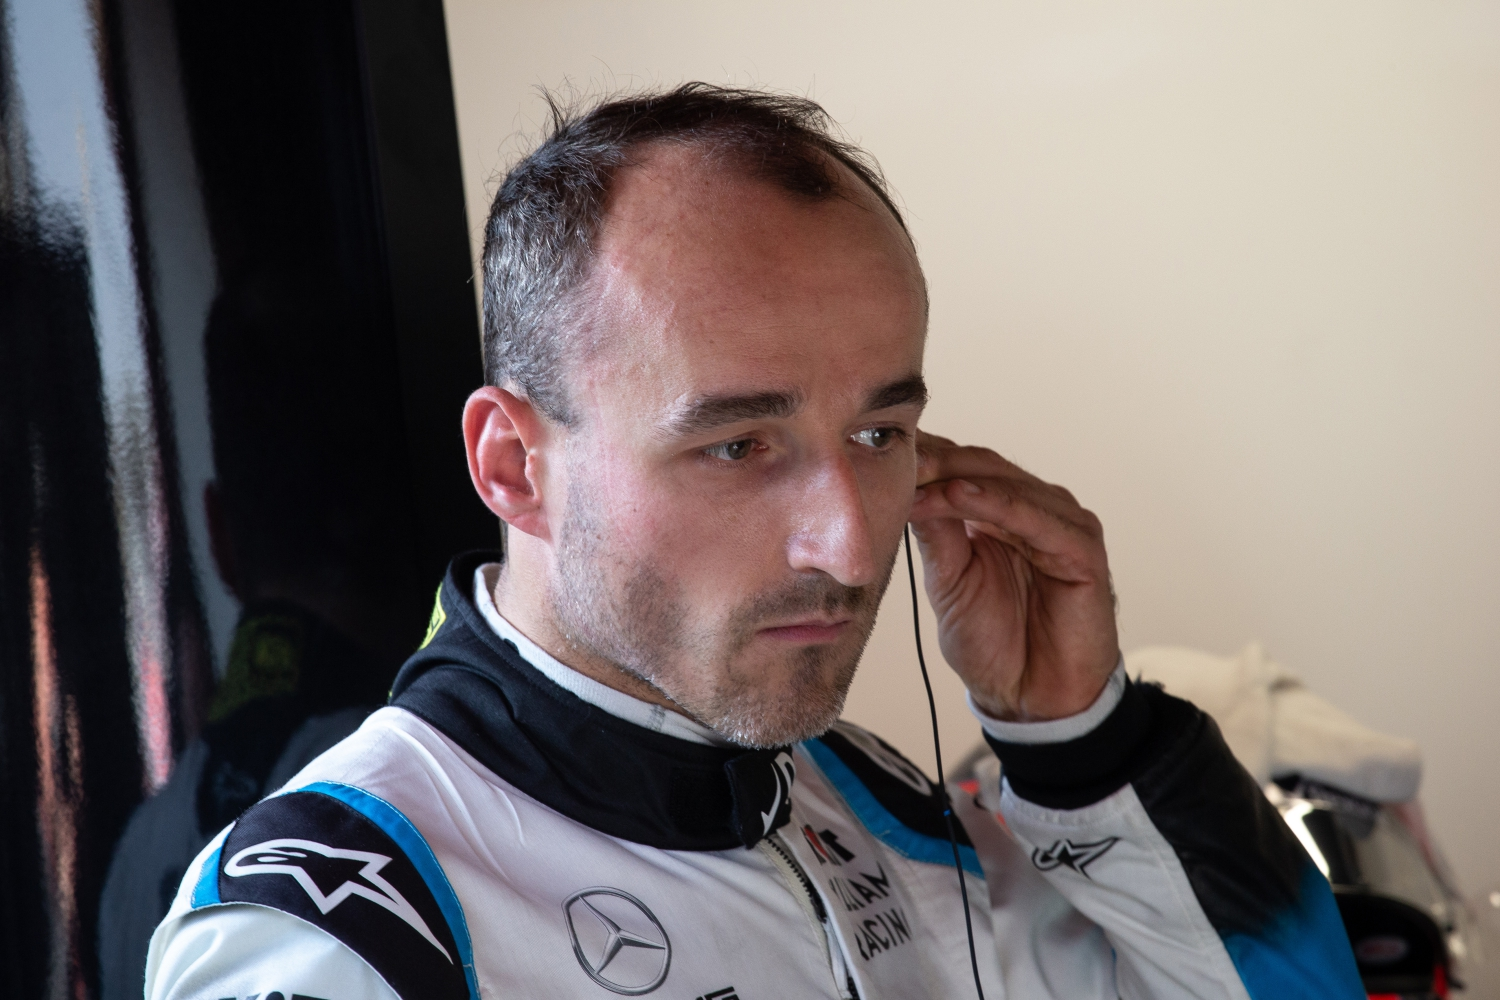 Robert Kubica / © ROKiT Williams Racing